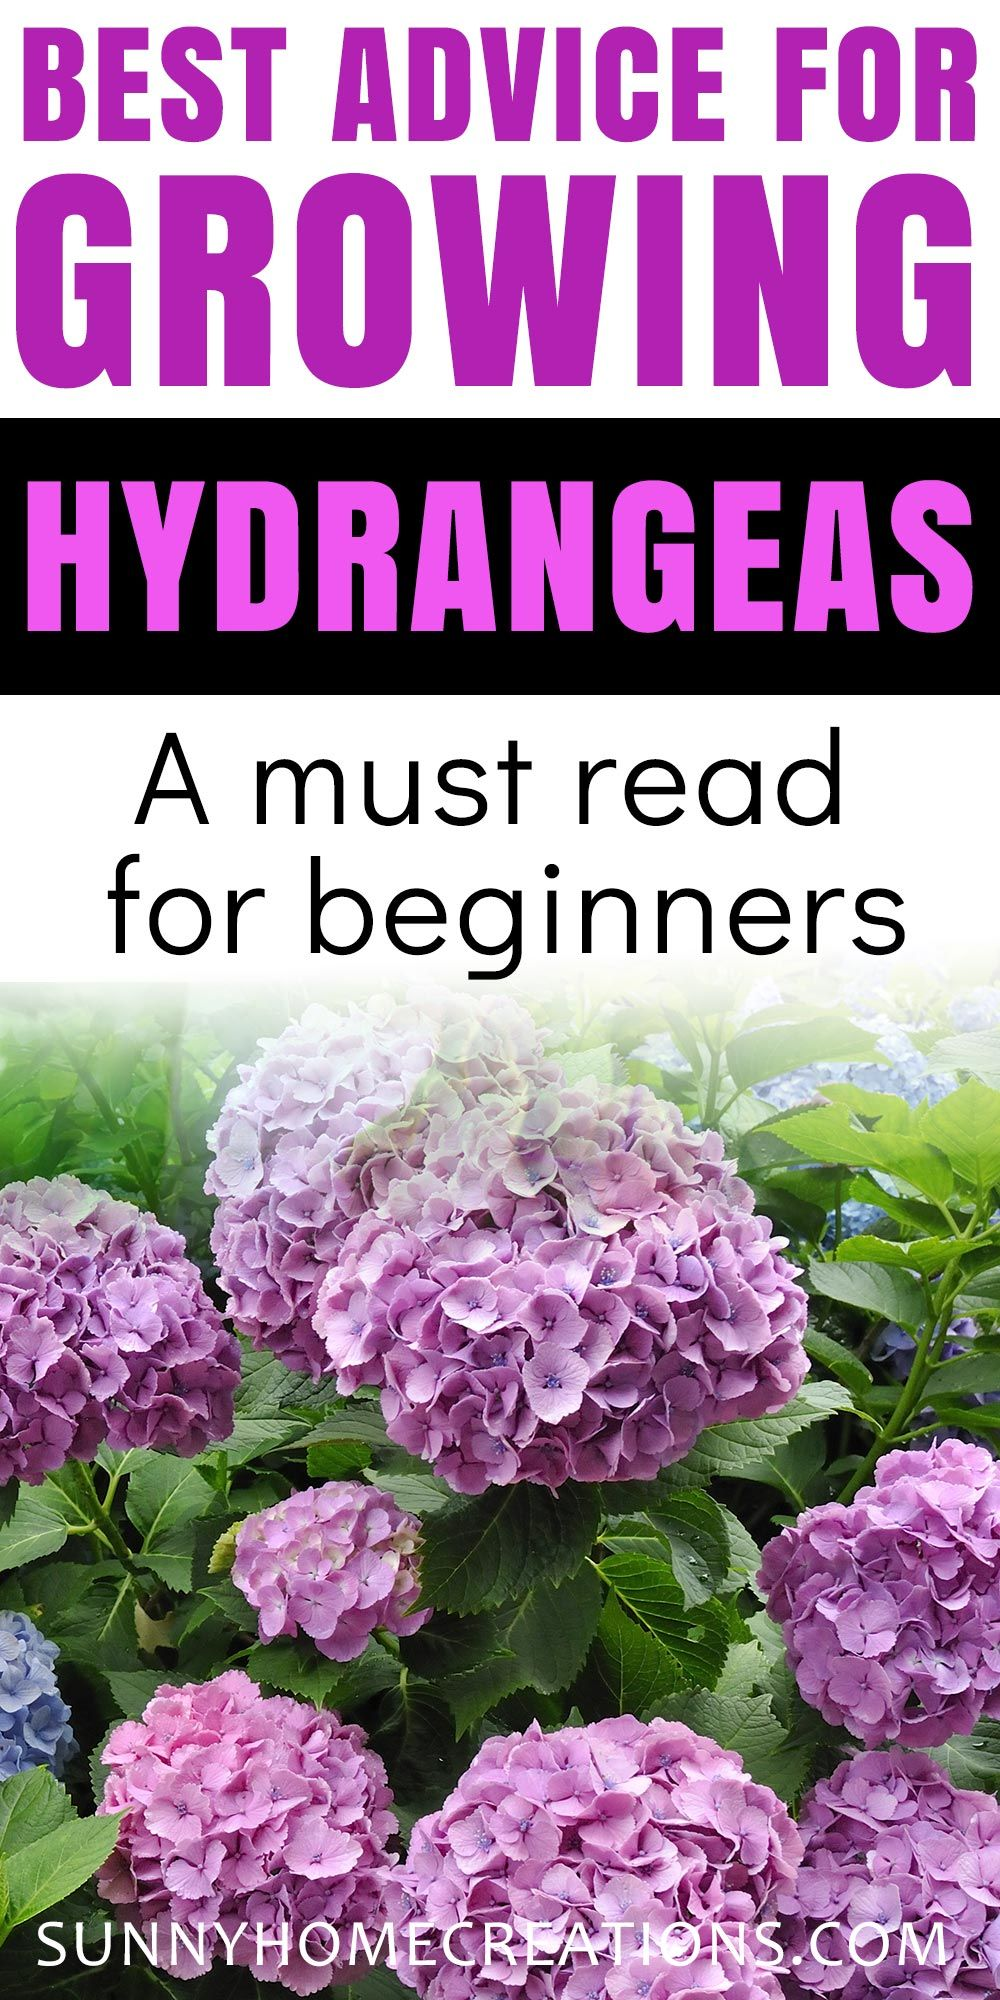 Hydrangea Care And Growing Tips In 2020 Growing Hydrangeas Hydrangea Landscaping Planting Hydrangeas